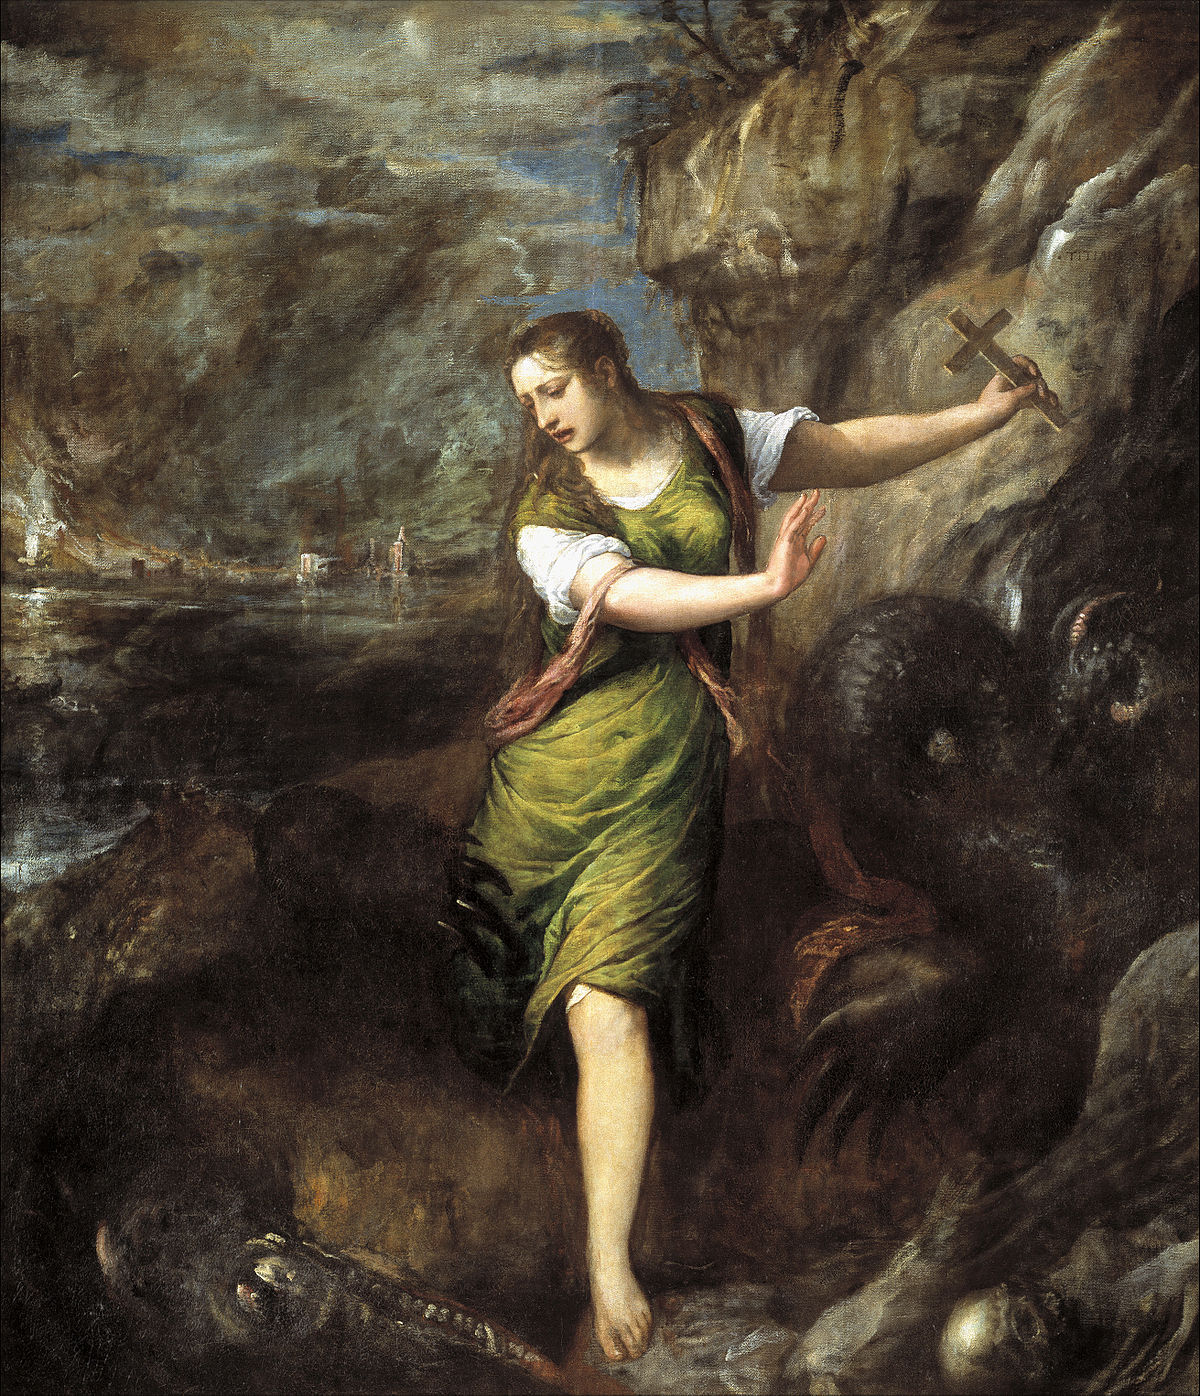 St Margaret and the Dragon (Titian) - Wikipedia